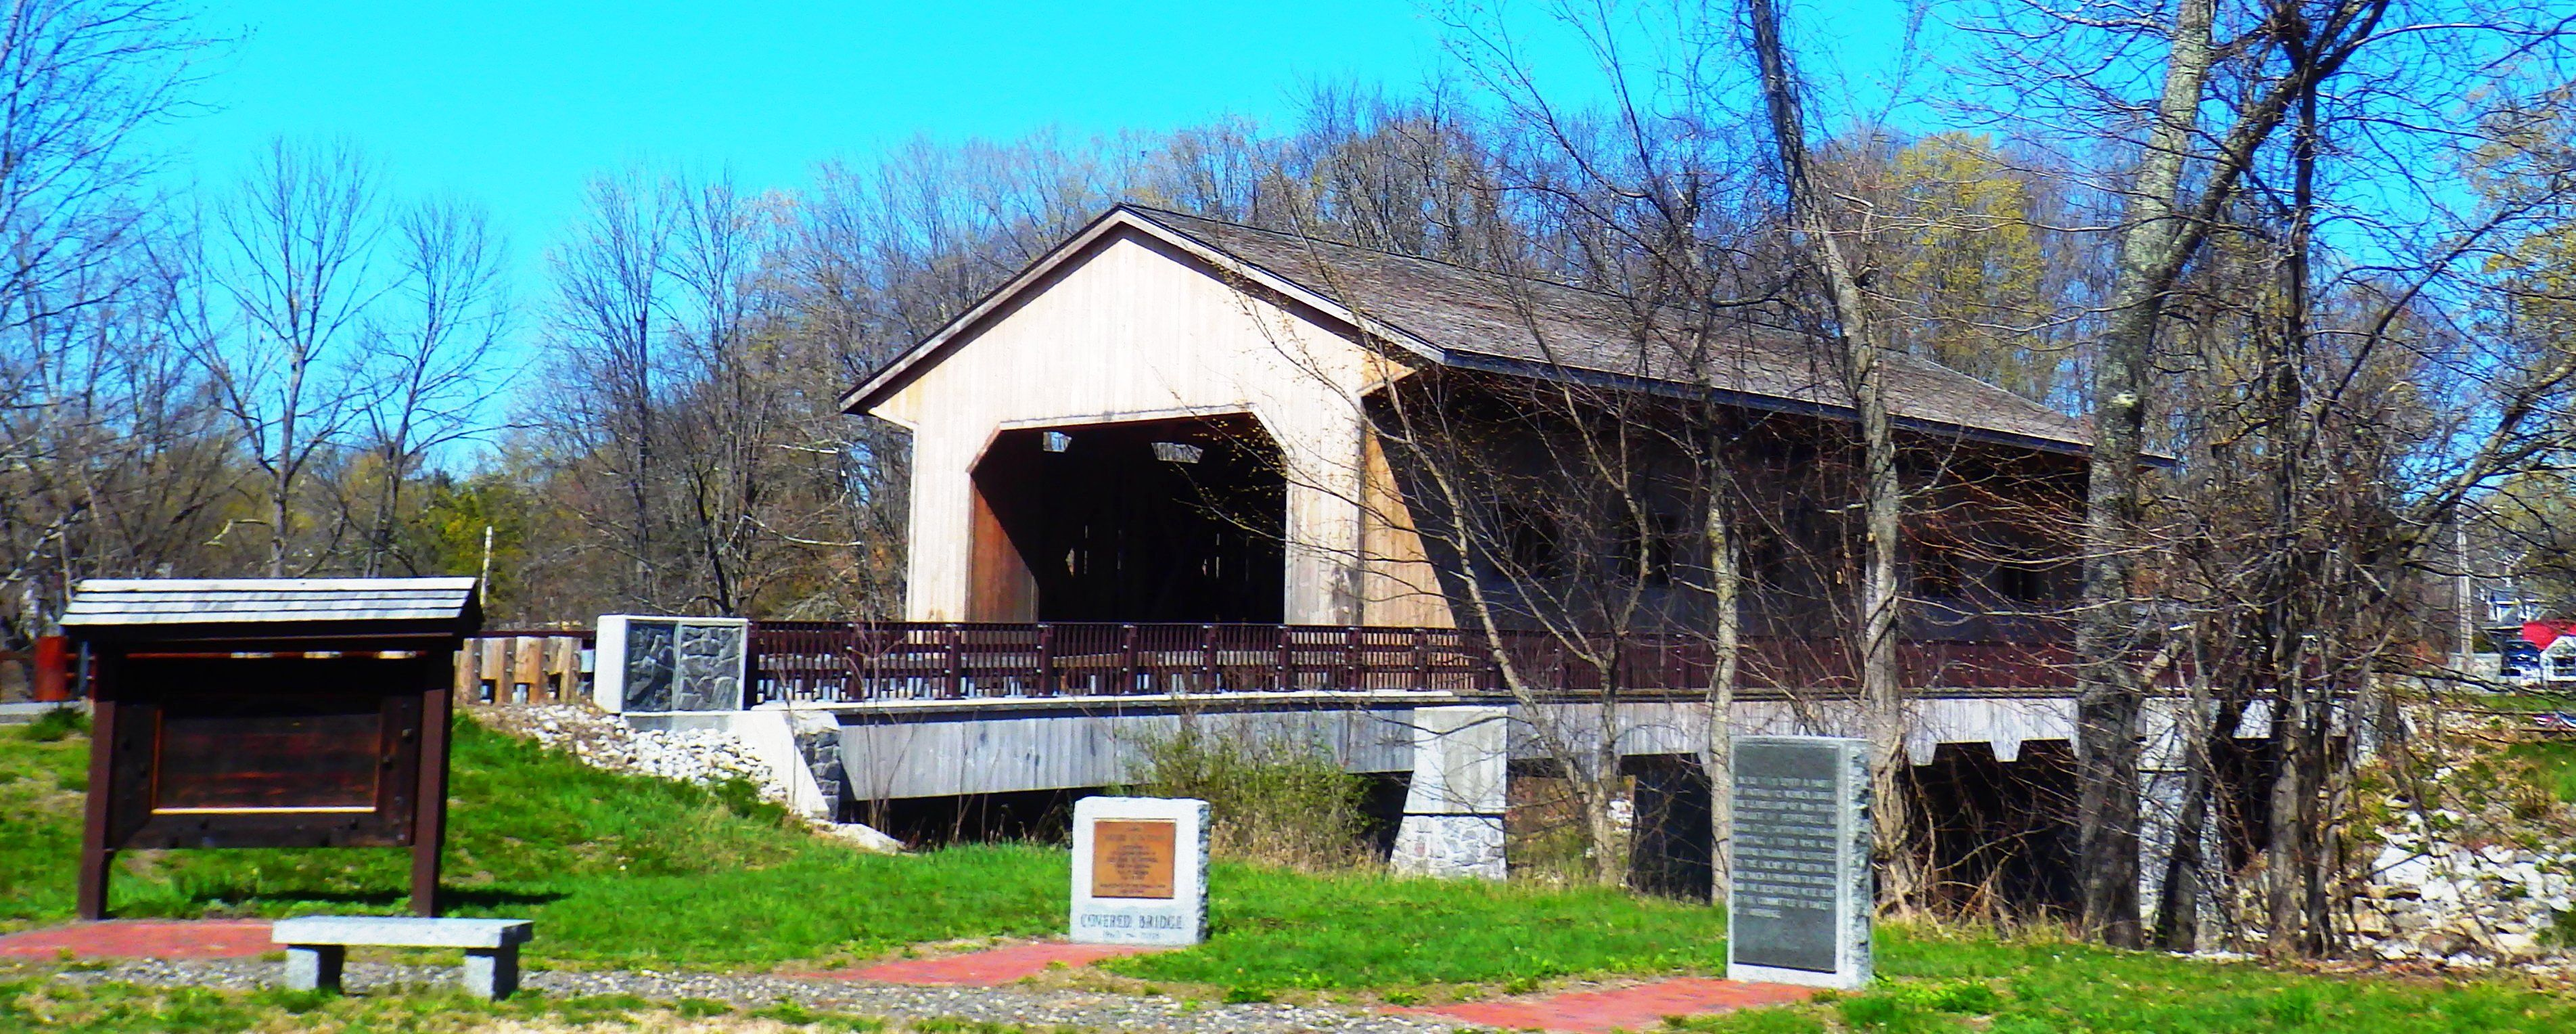 Pepperell Covered Bridge Photograph by James Walsh